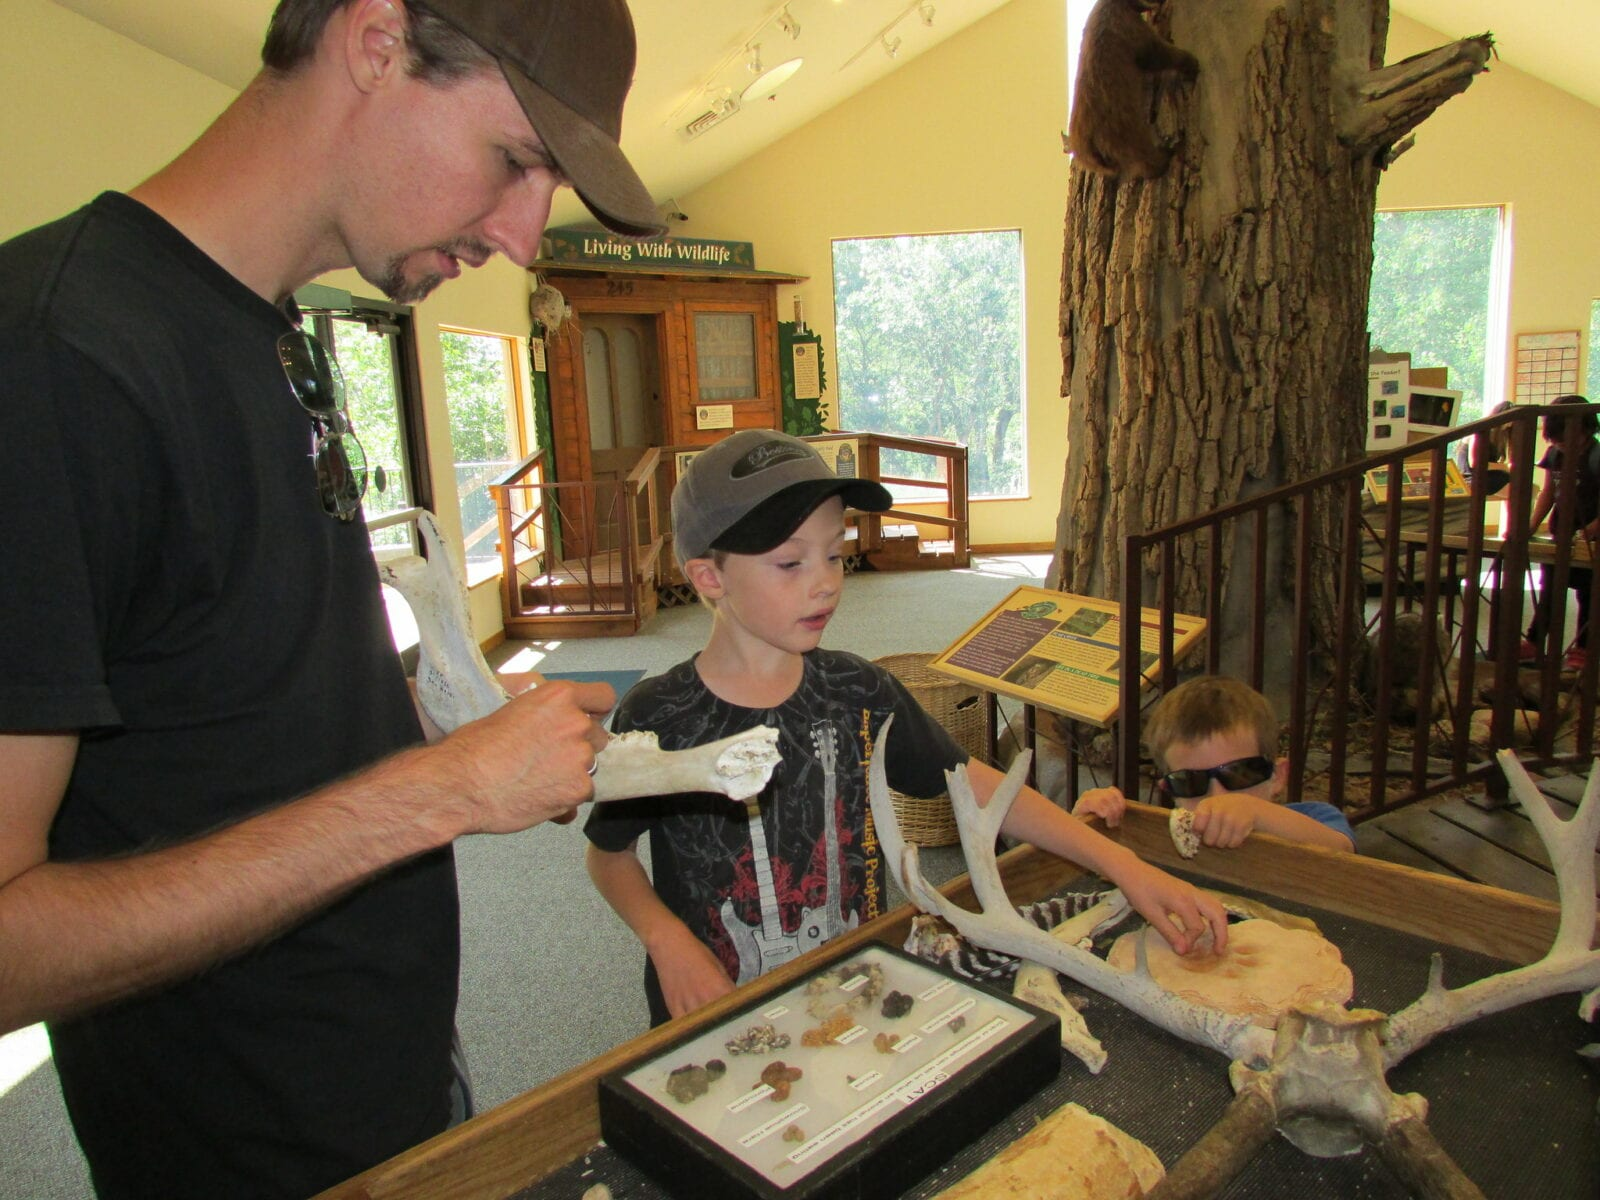 Image of children interacting with different exhibits in the Bear Creek Nature Center in Colorado Springs, Colorado